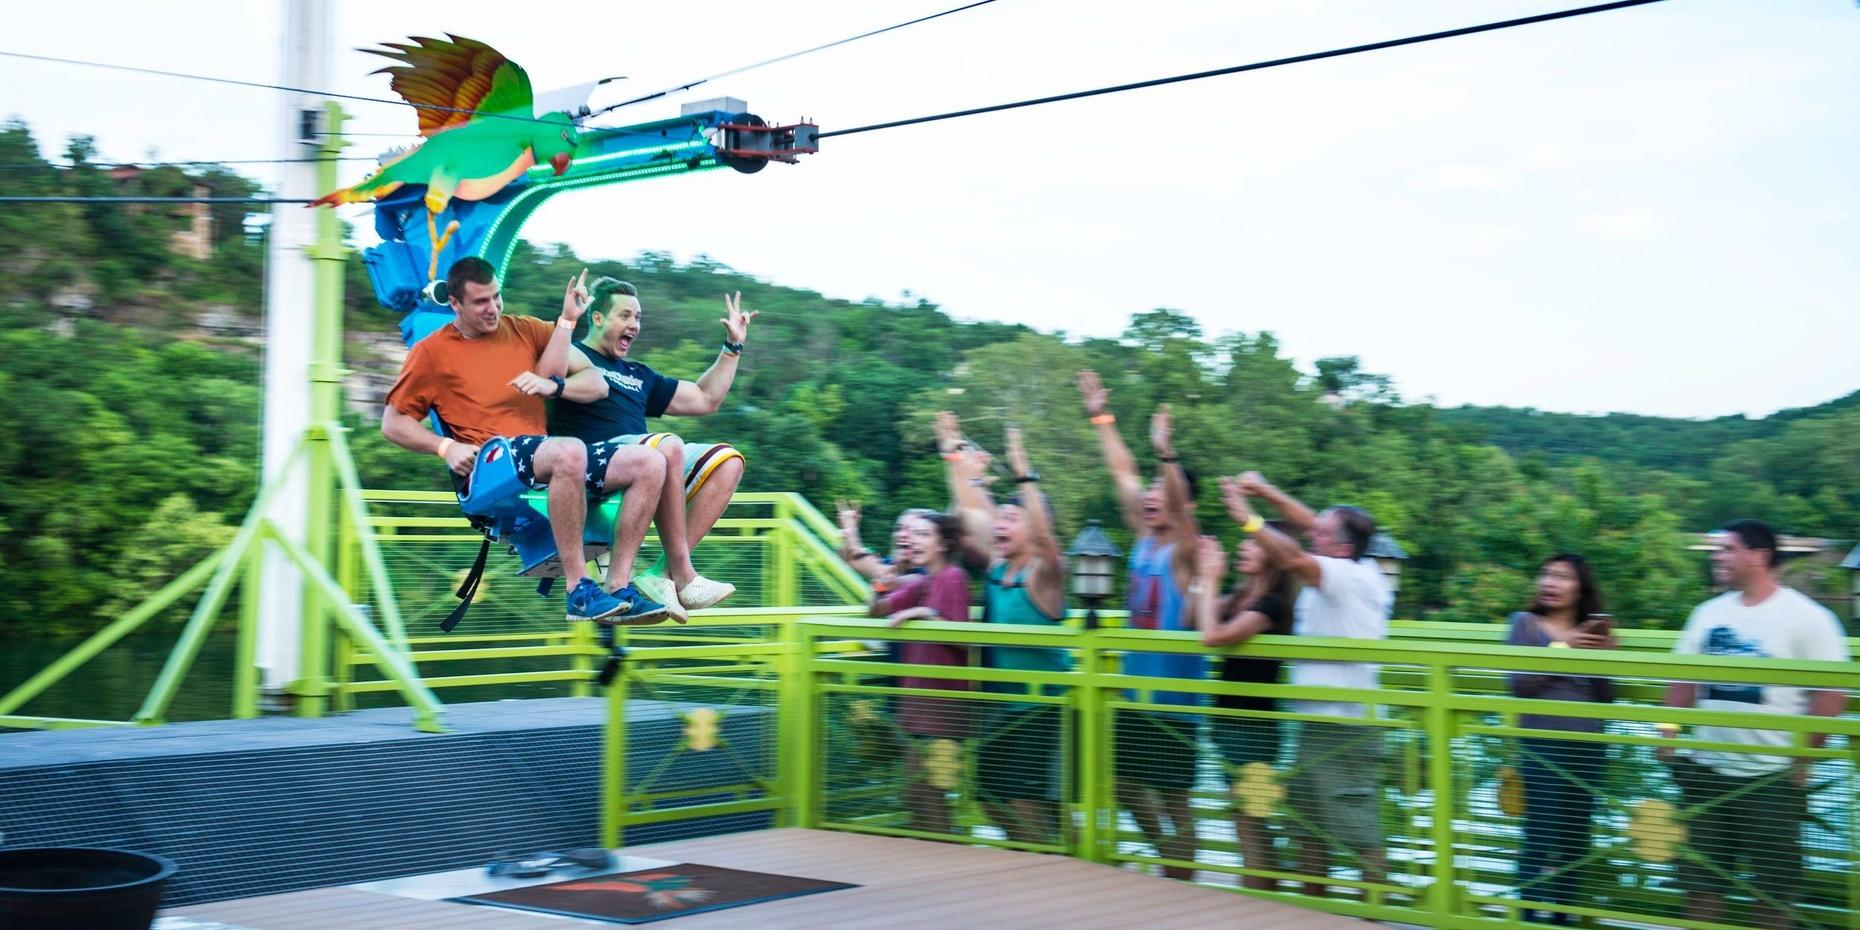 Waterfront Zipline Experience in Branson